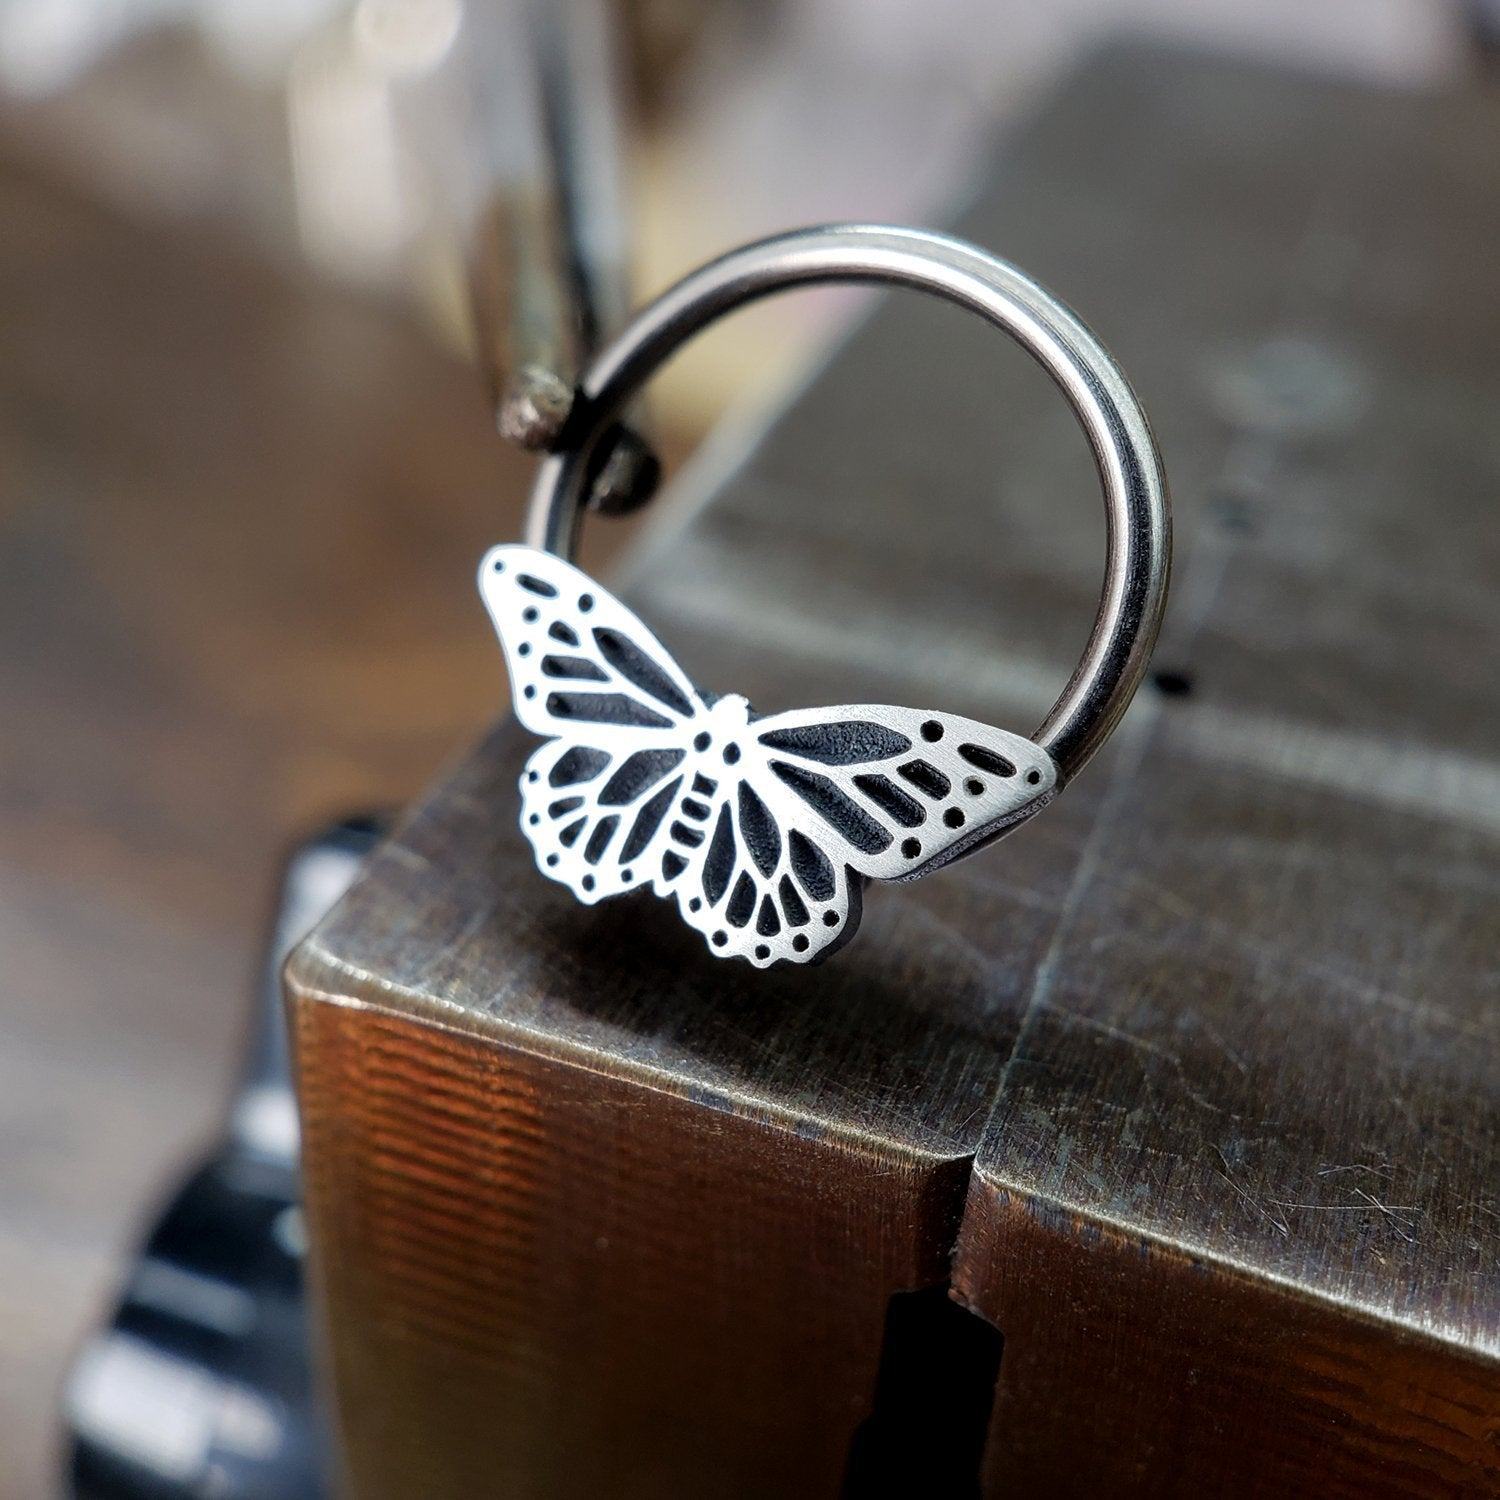 14G Monarch Butterfly Captive Bead Ring - Metal Lotus